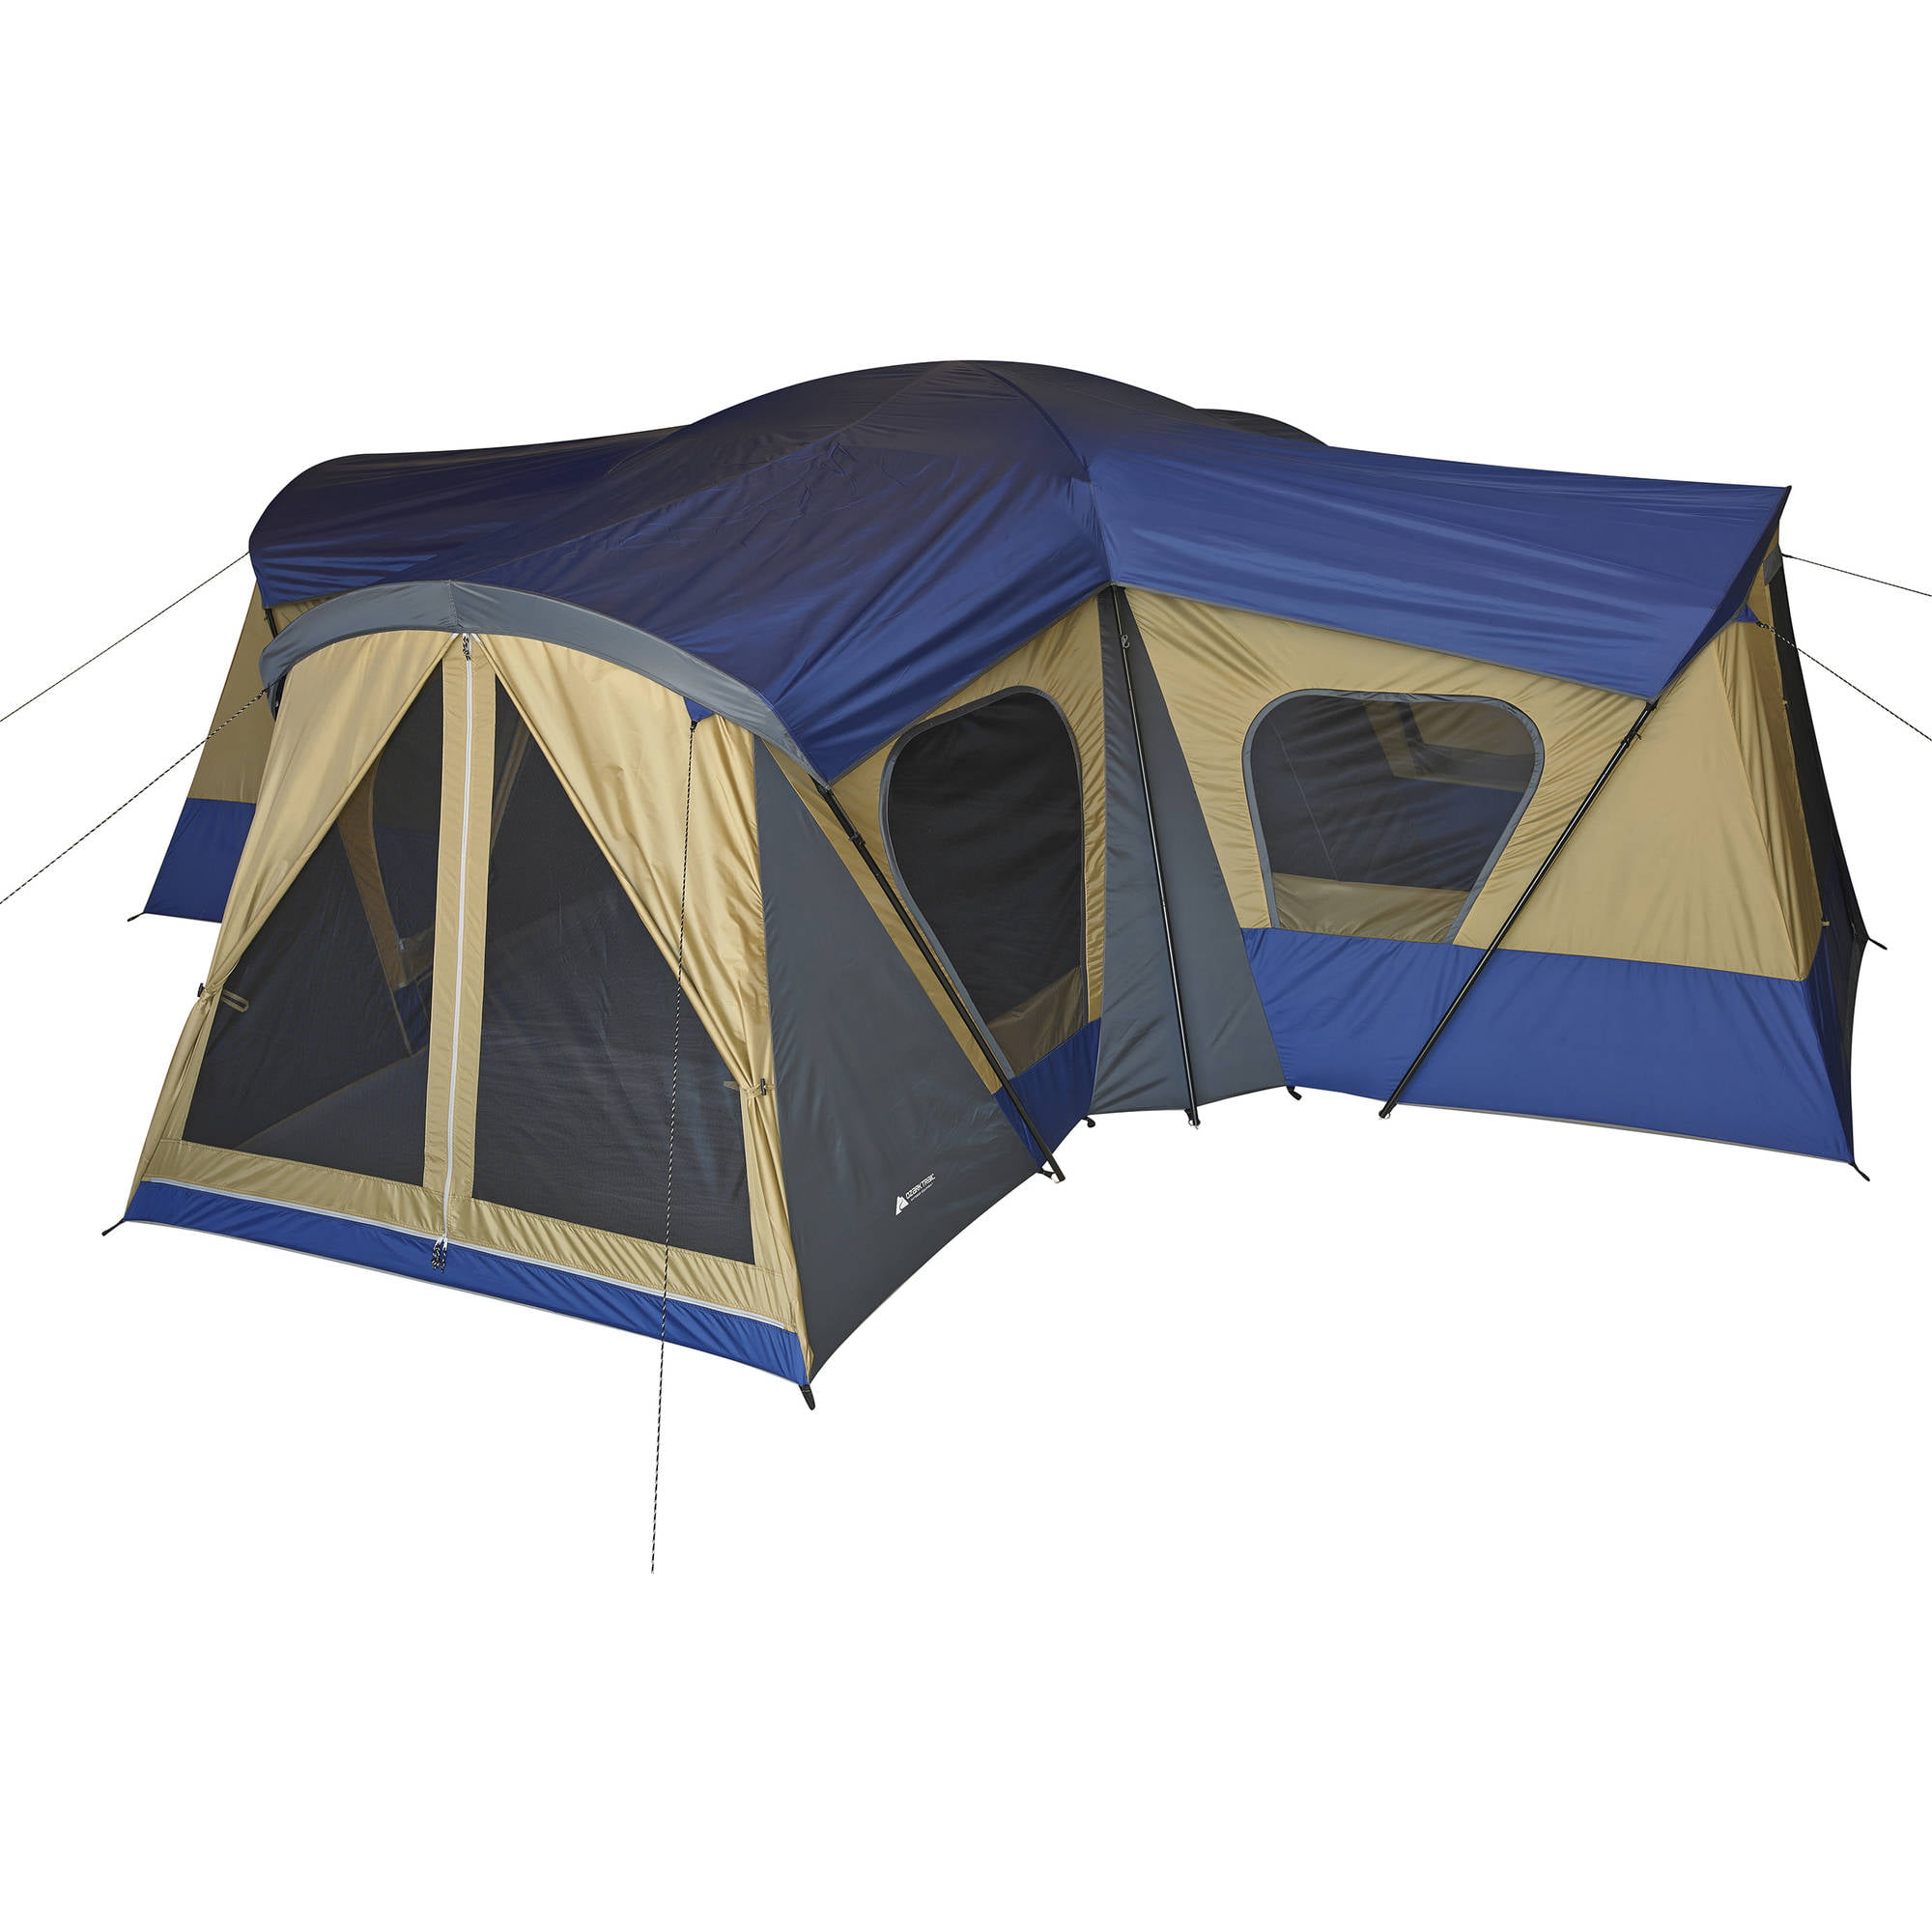 sc 1 st  Walmart & Ozark Trail 14-Person 4-Room Base Camp Tent - Walmart.com